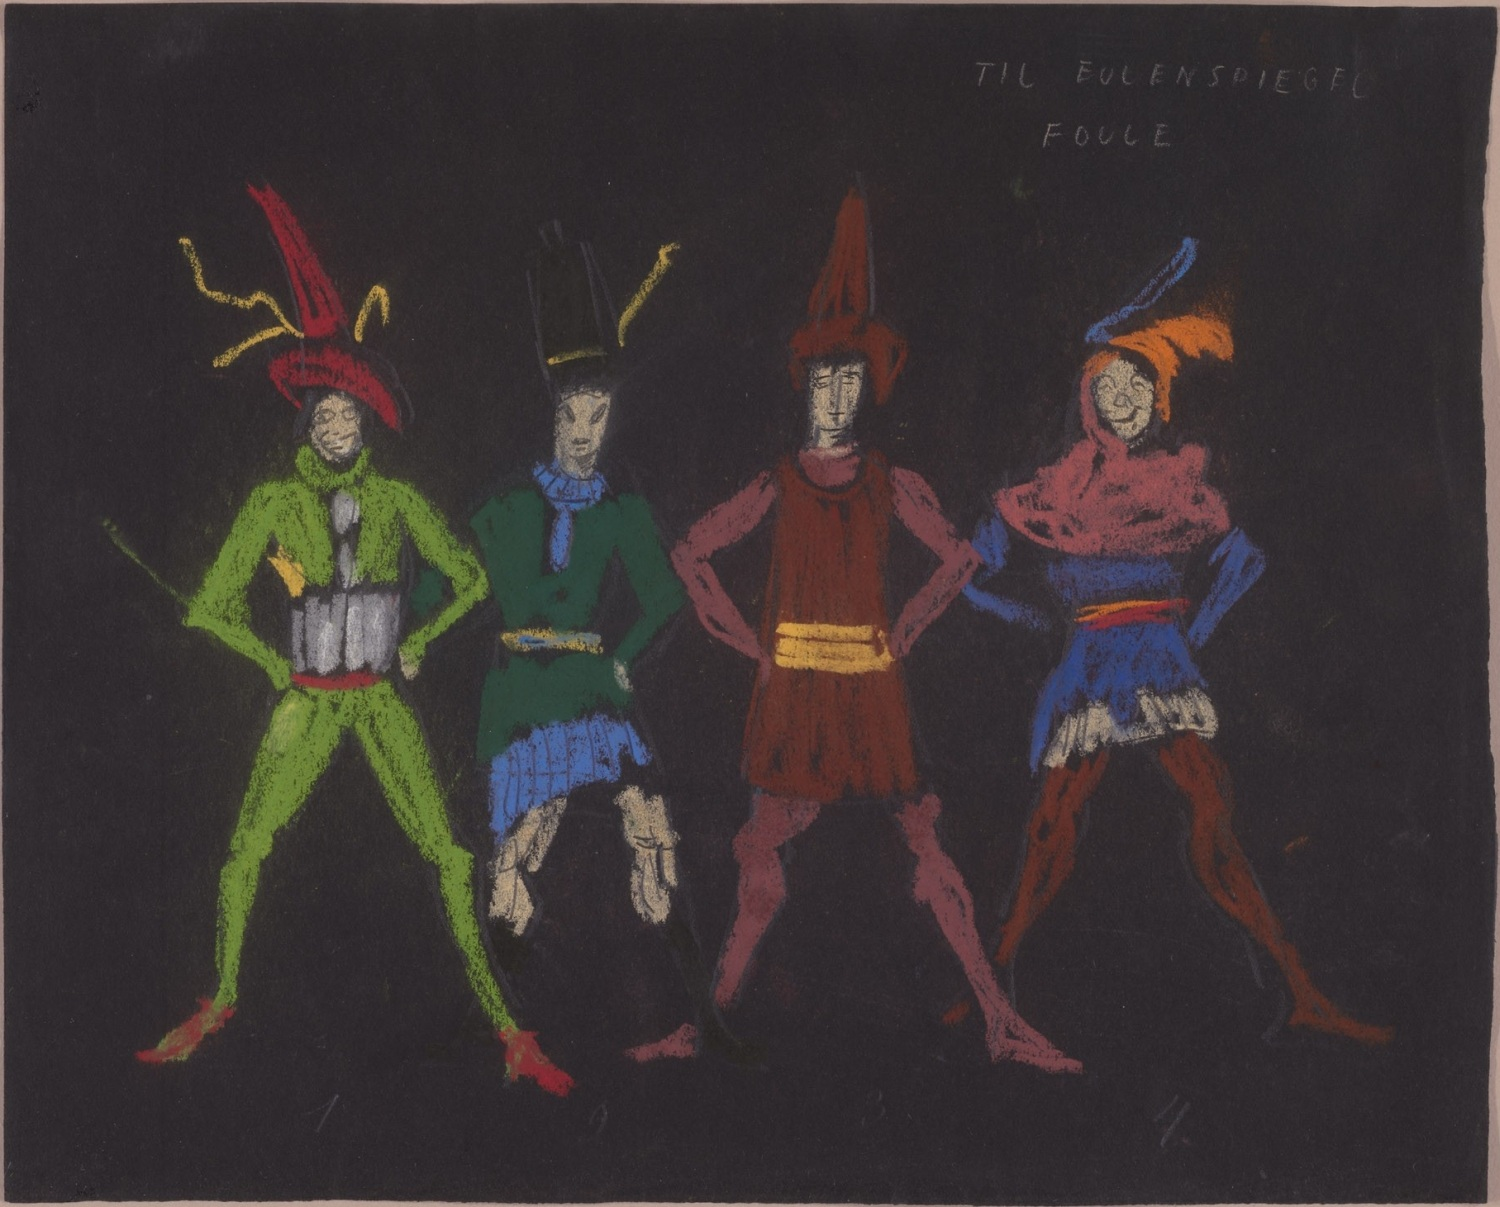 chalk sketches of German folkloric figures